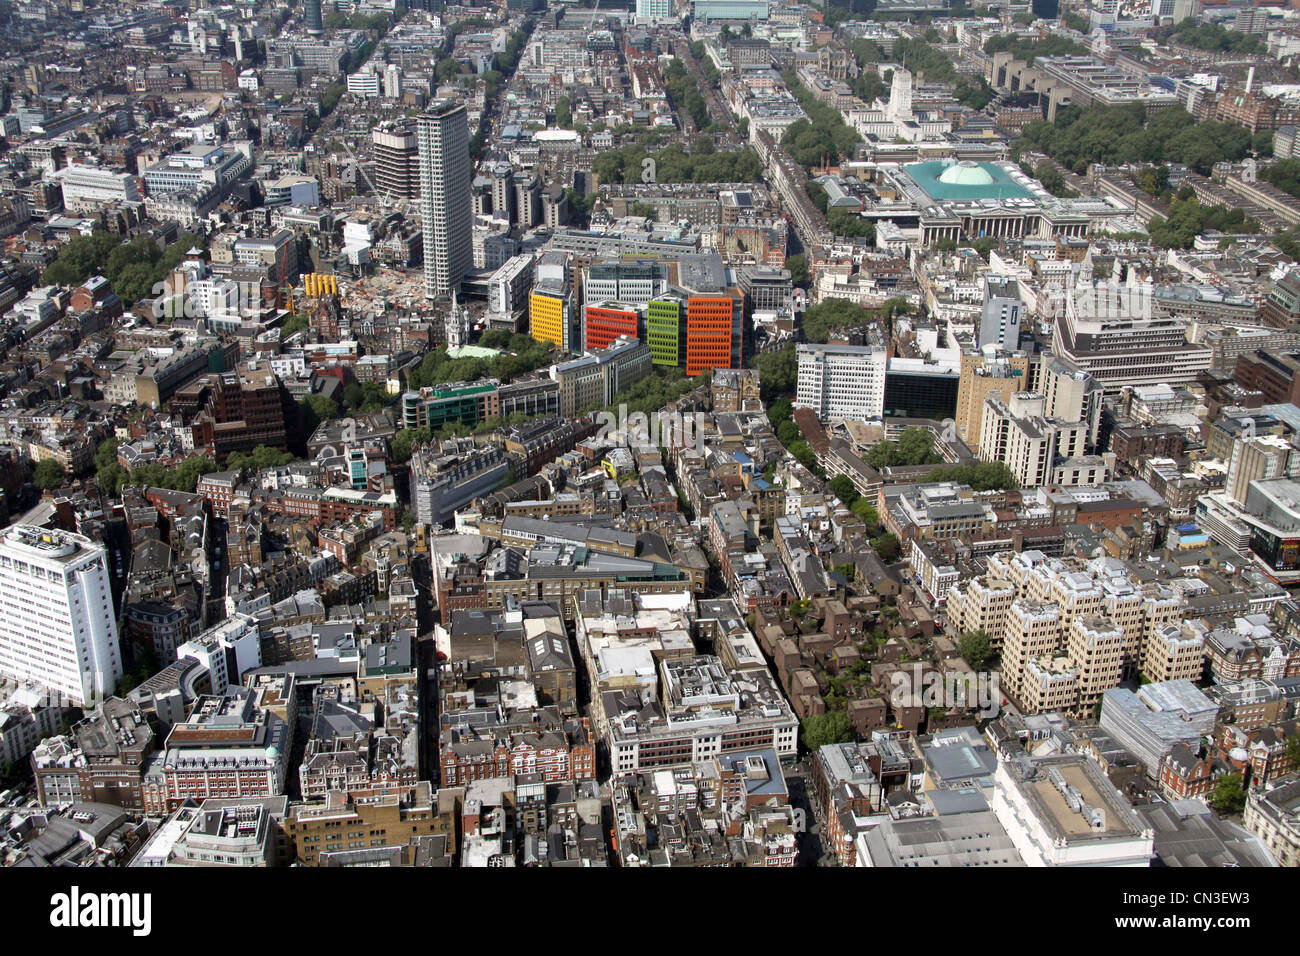 Aerial view of Shaftesbury Avenue, Mercer Street, Endell Street, London WC1 - Stock Image